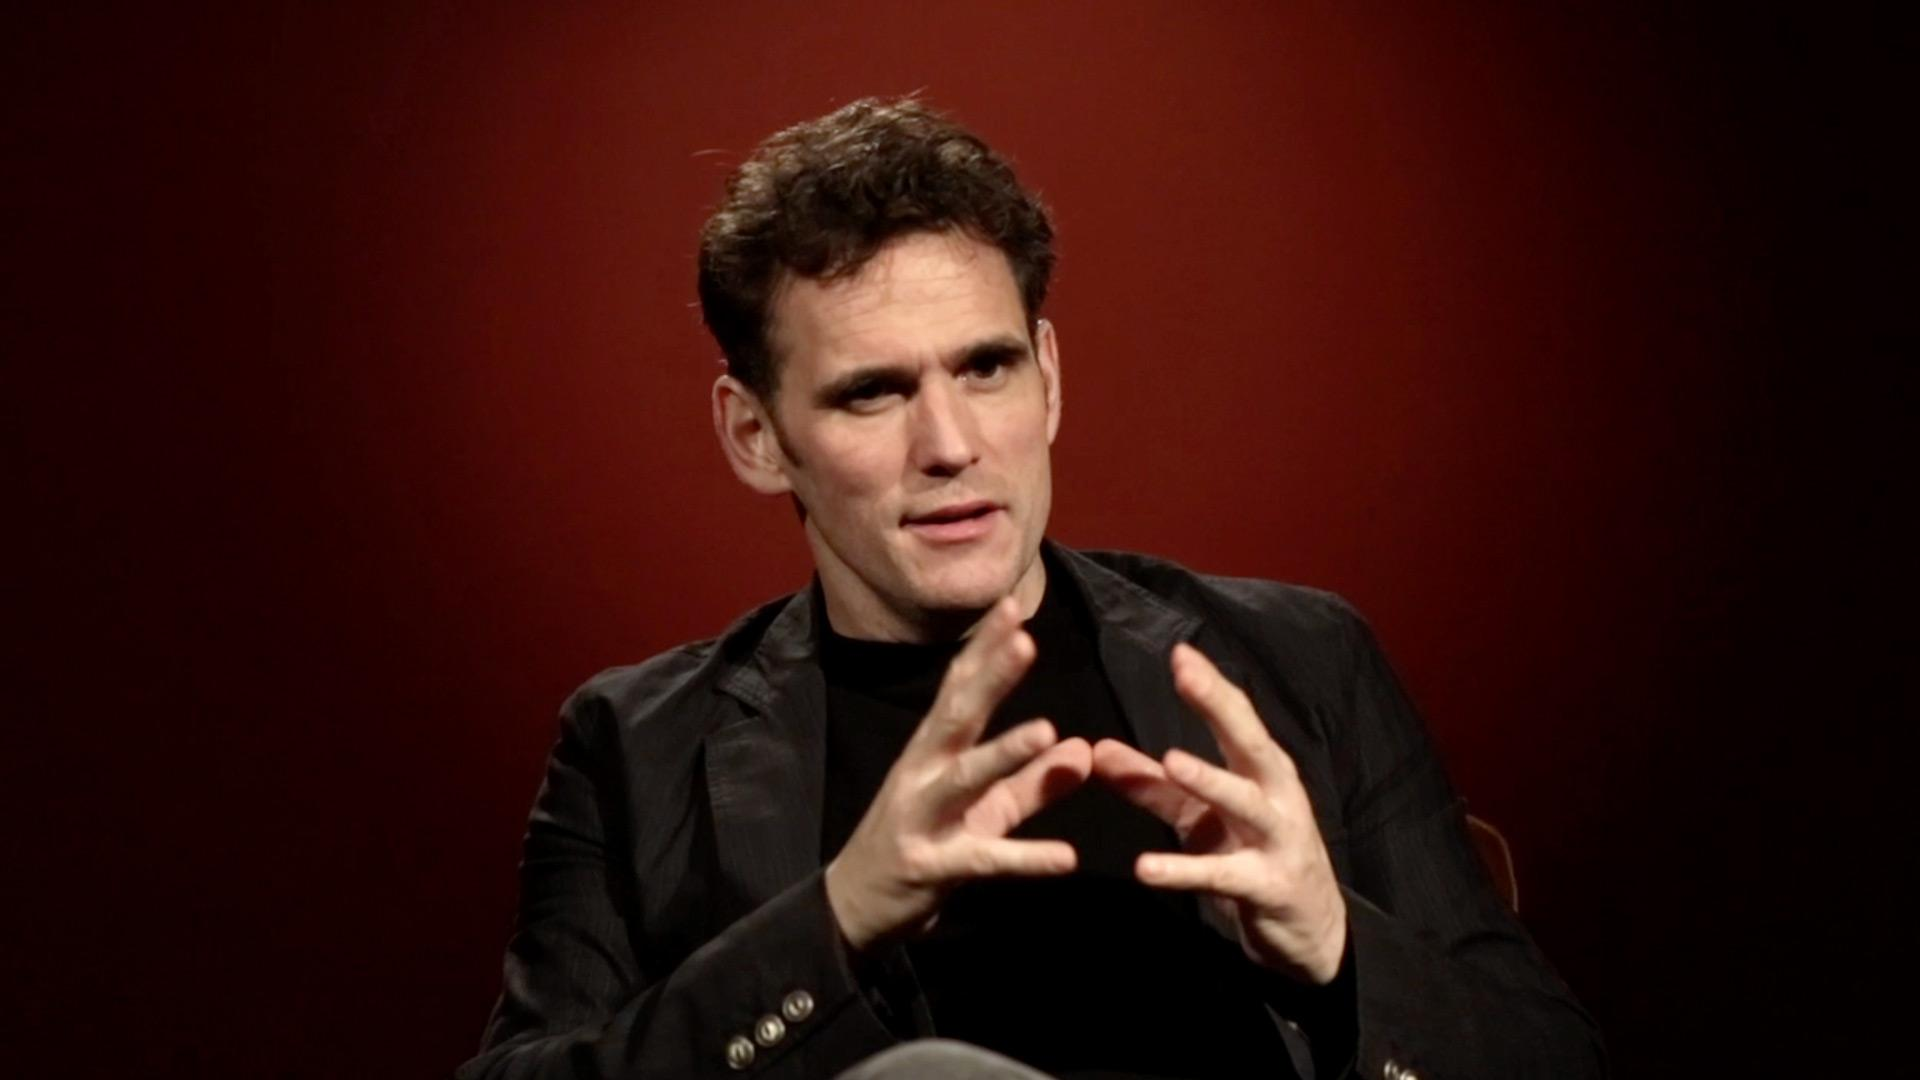 Matt Dillon at Savannah Film Festival